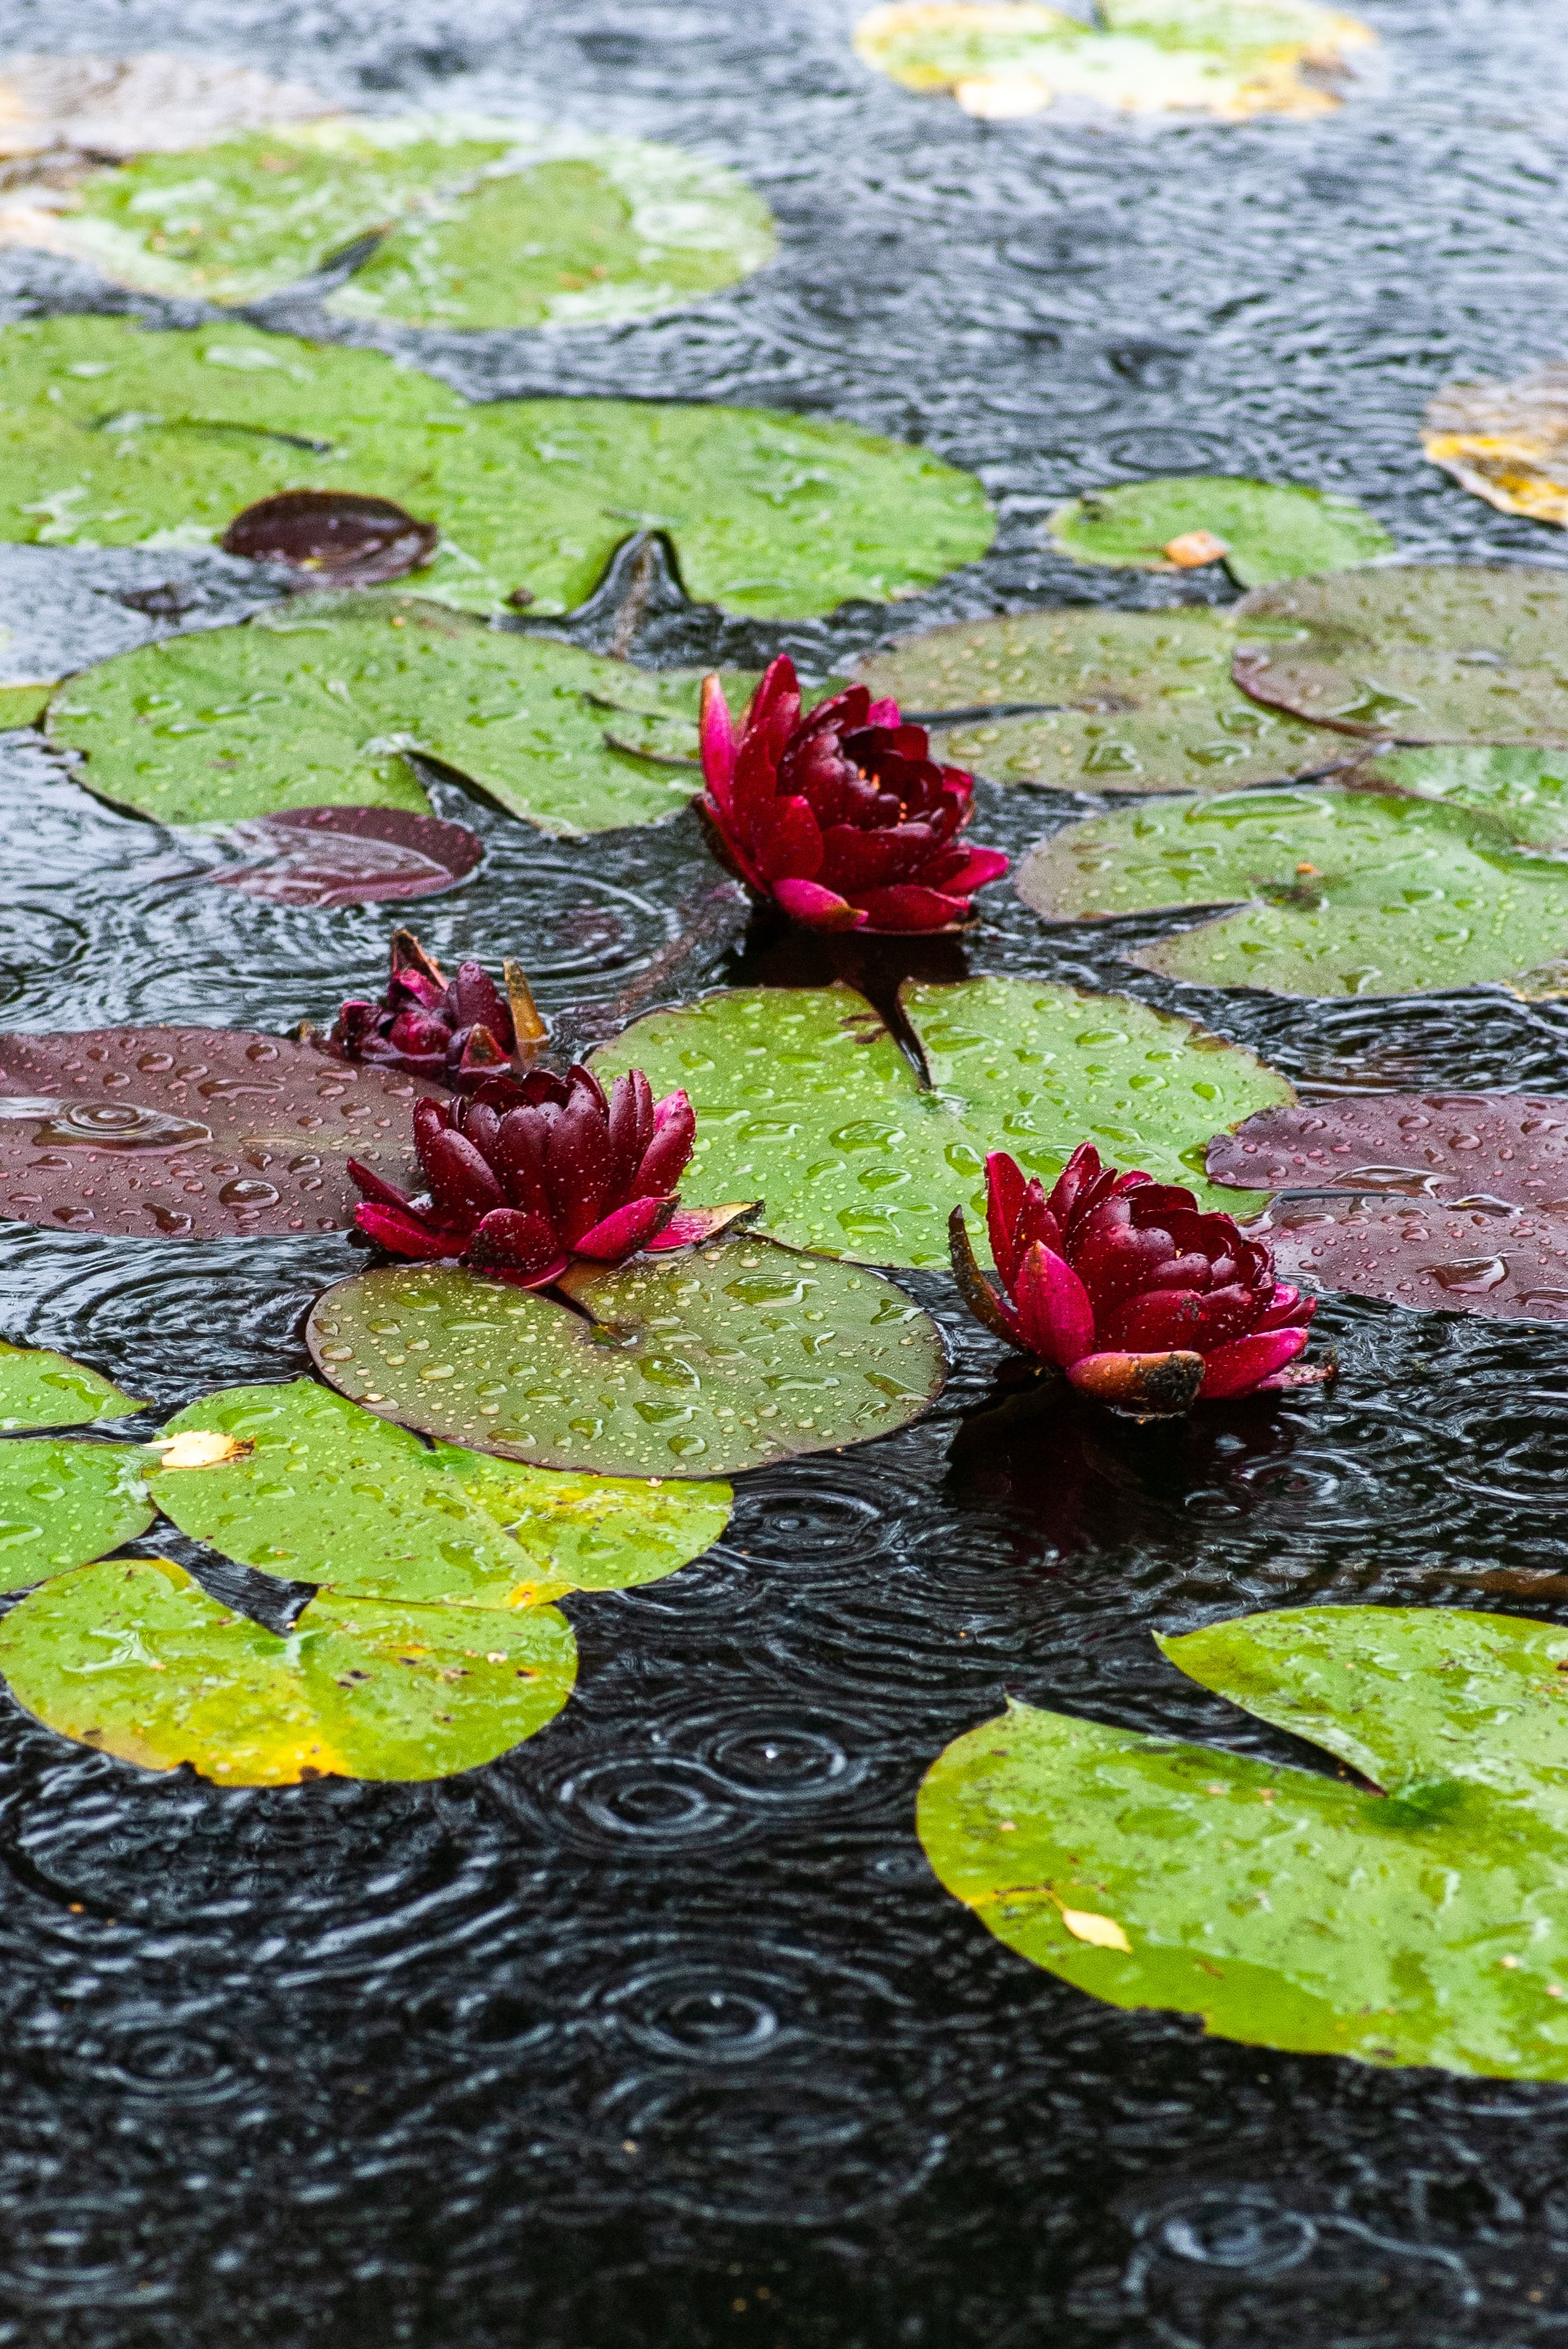 three purple flowers on body of water during rain